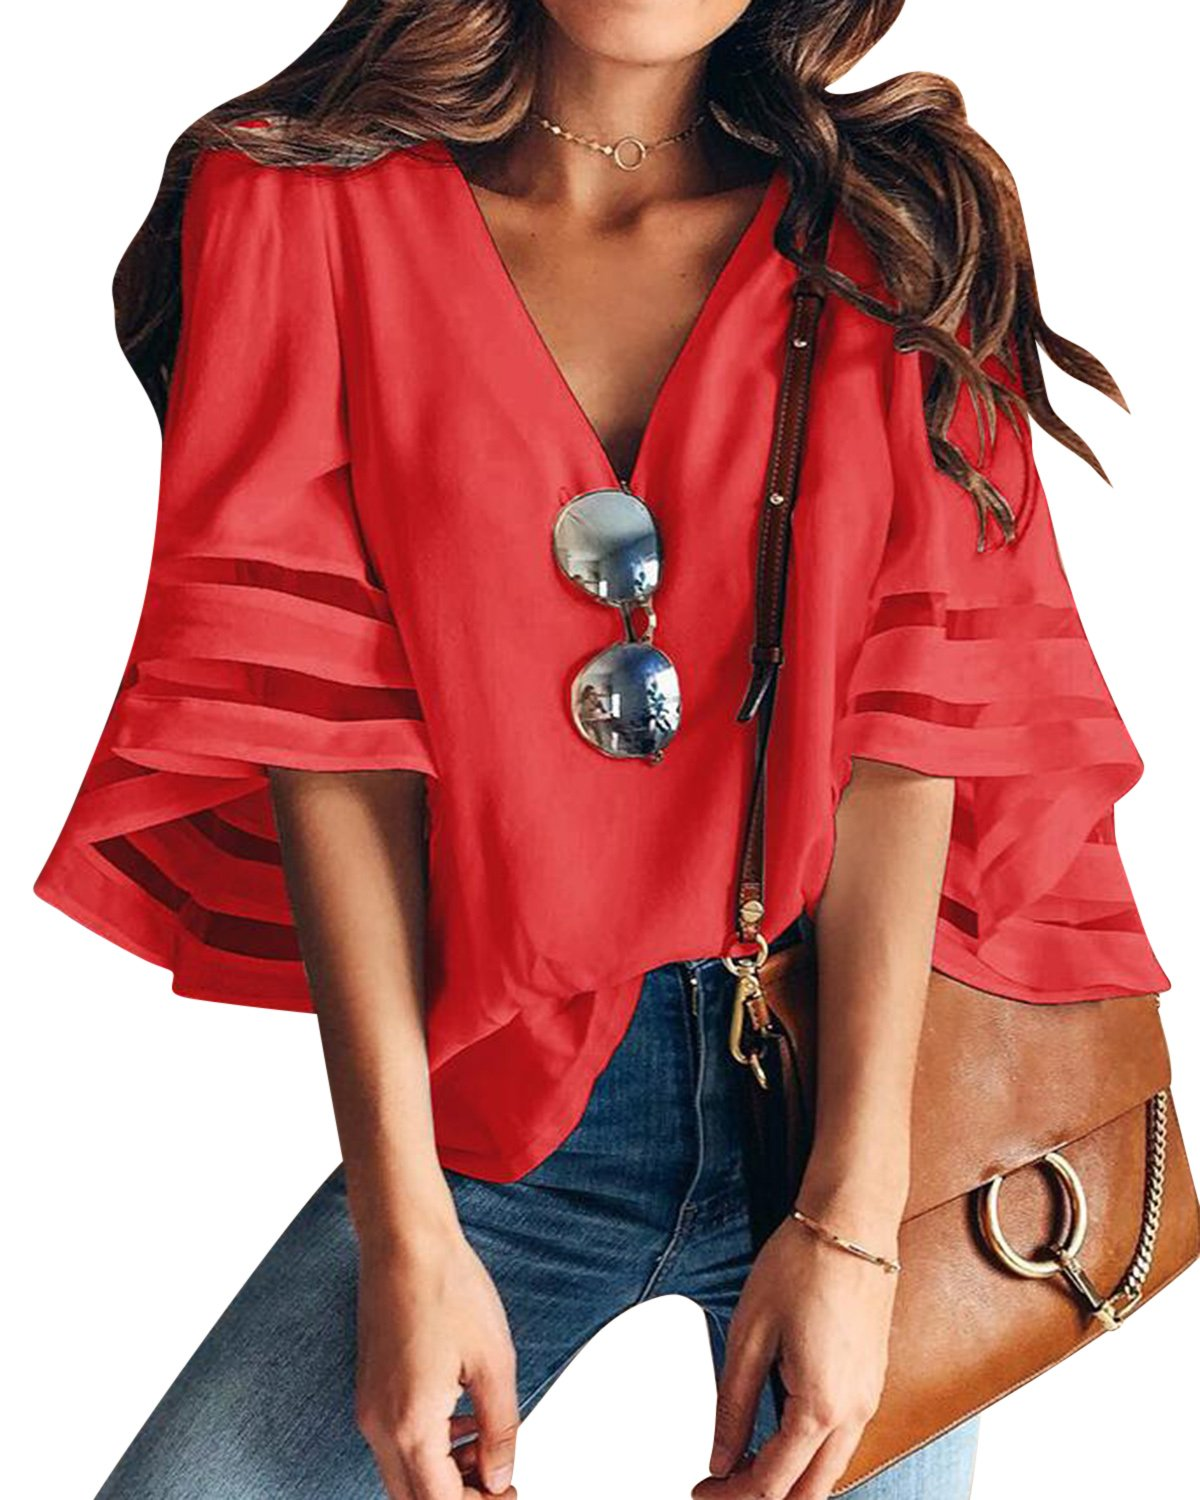 BBYES Women Casual V-Neck 3/4 Sleeve Summer Loose Ladies Tops Blouse Shirts S-XL BBYES-CA0029938@639